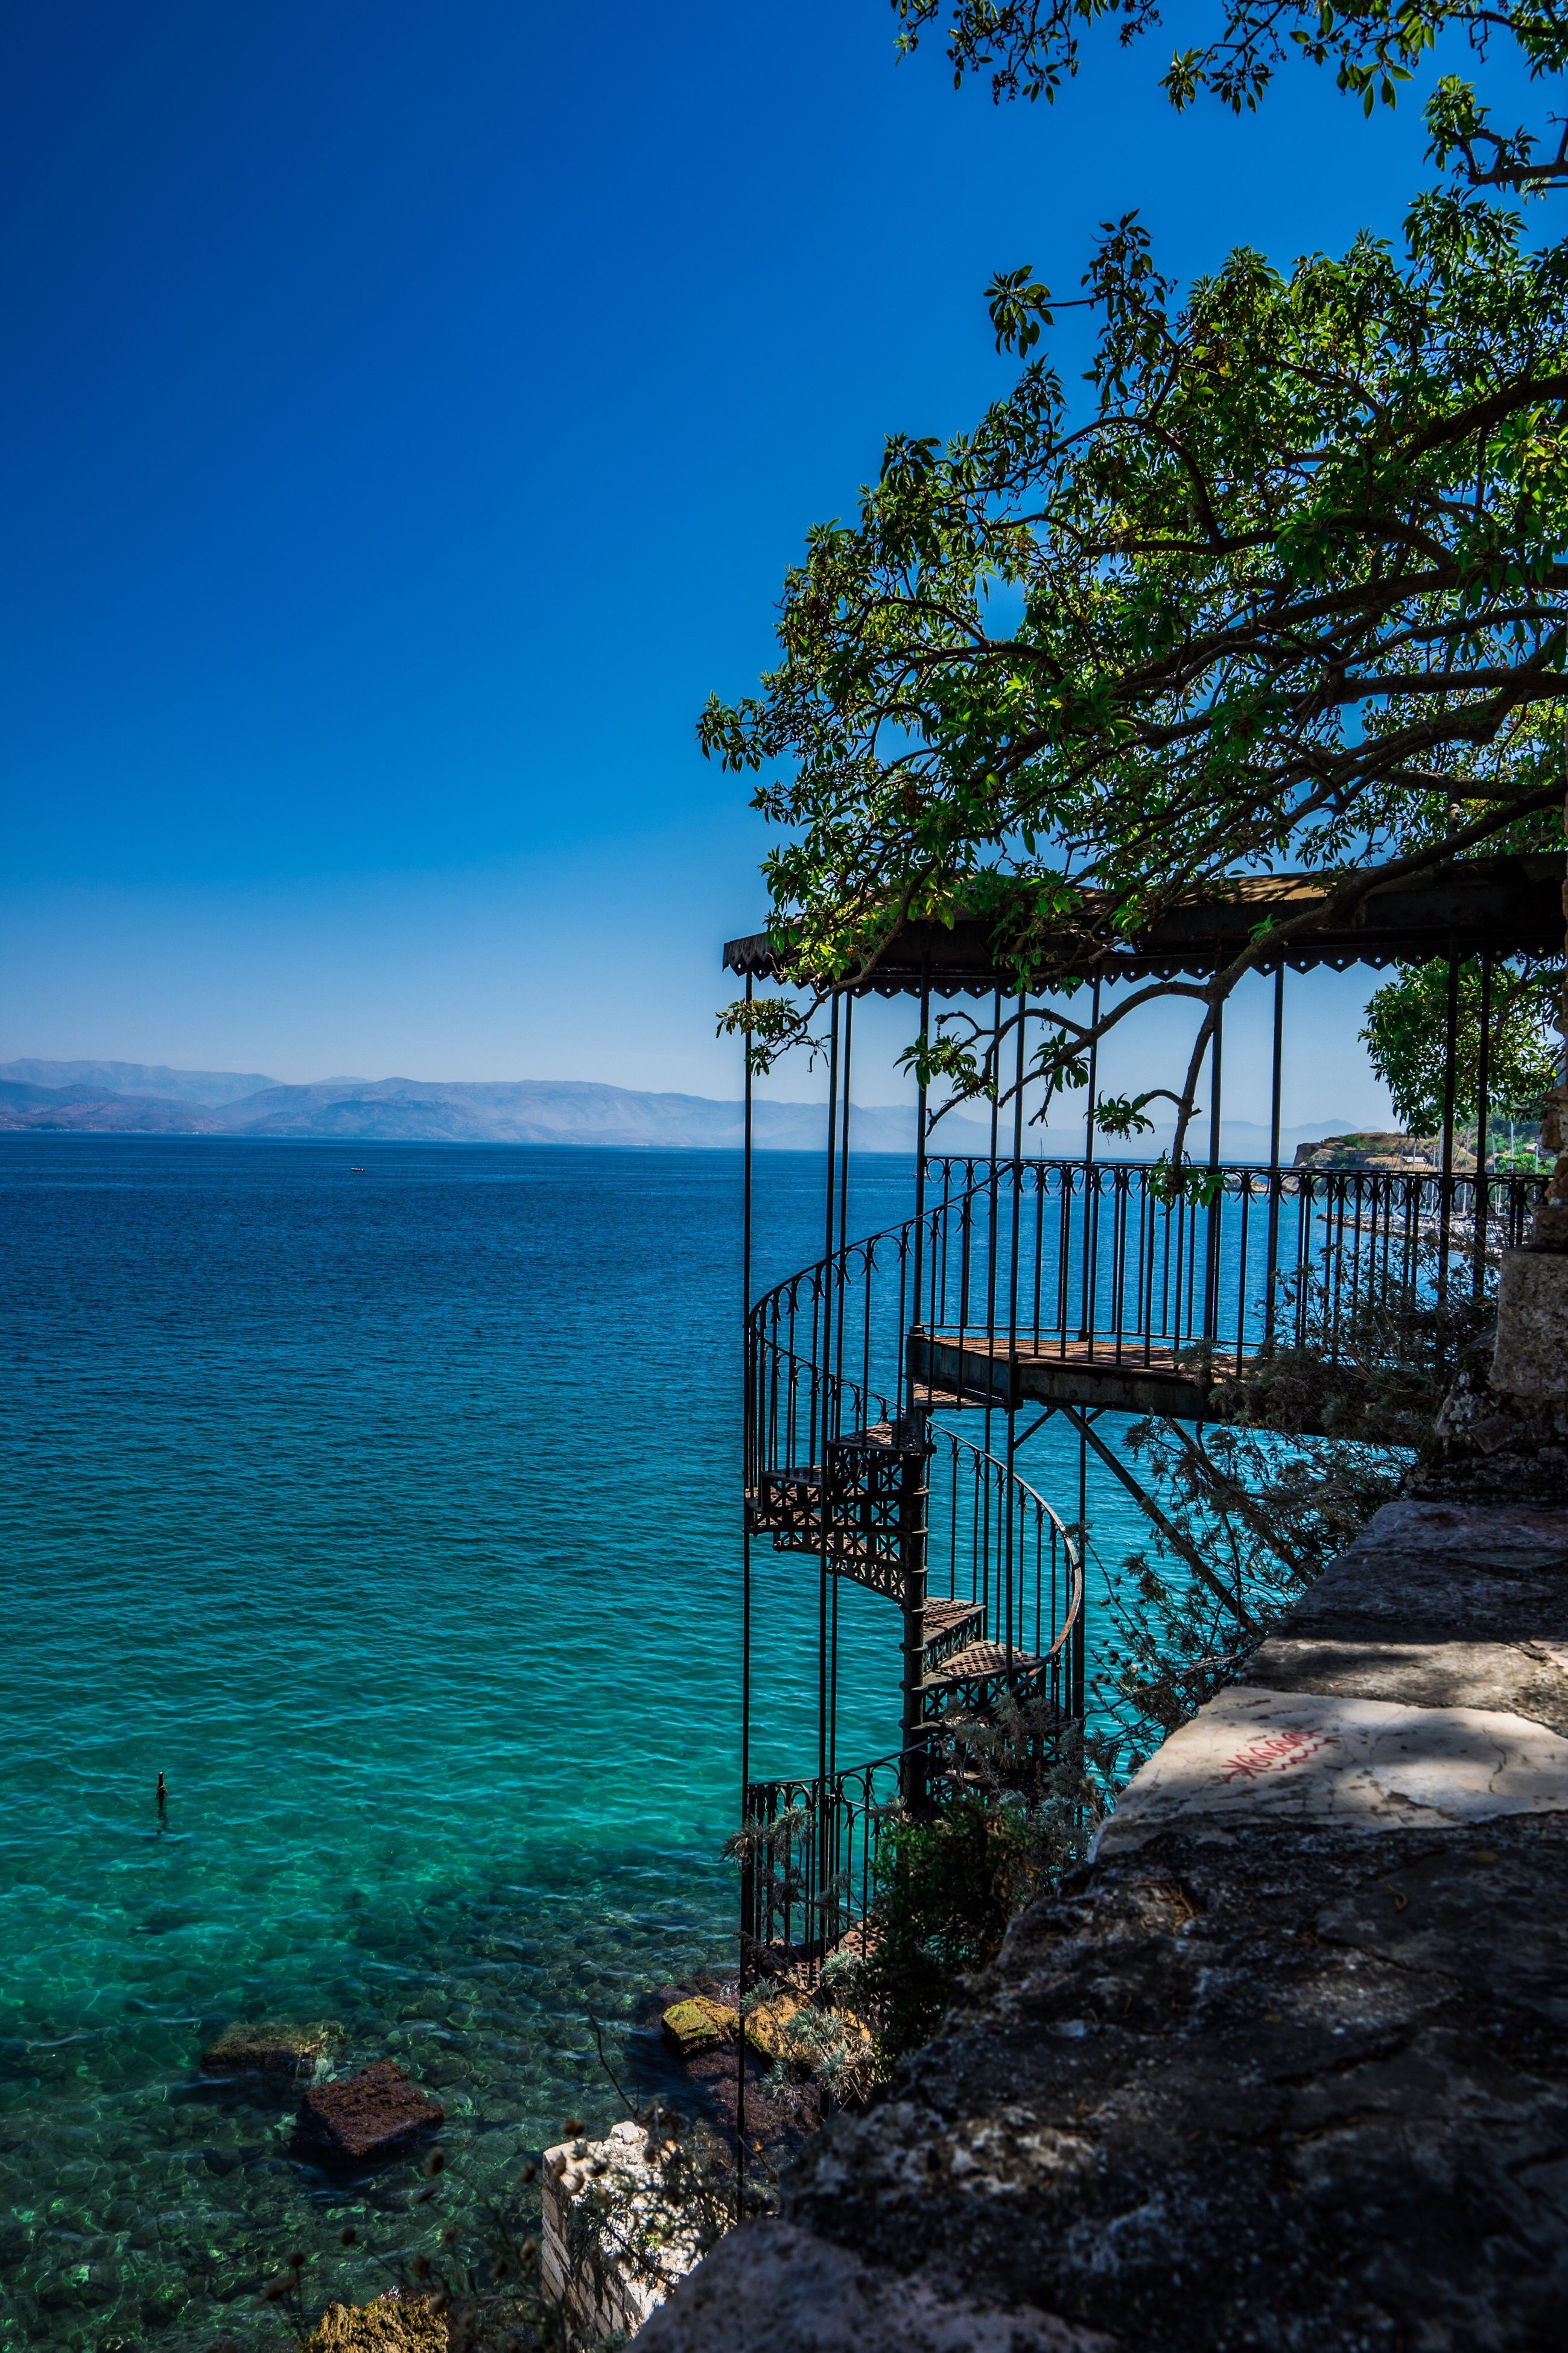 tree, water, blue, tranquil scene, scenics, tranquility, sea, nature, beauty in nature, calm, sky, seascape, day, tourism, outdoors, non-urban scene, solitude, vacations, shore, remote, no people, ocean, majestic